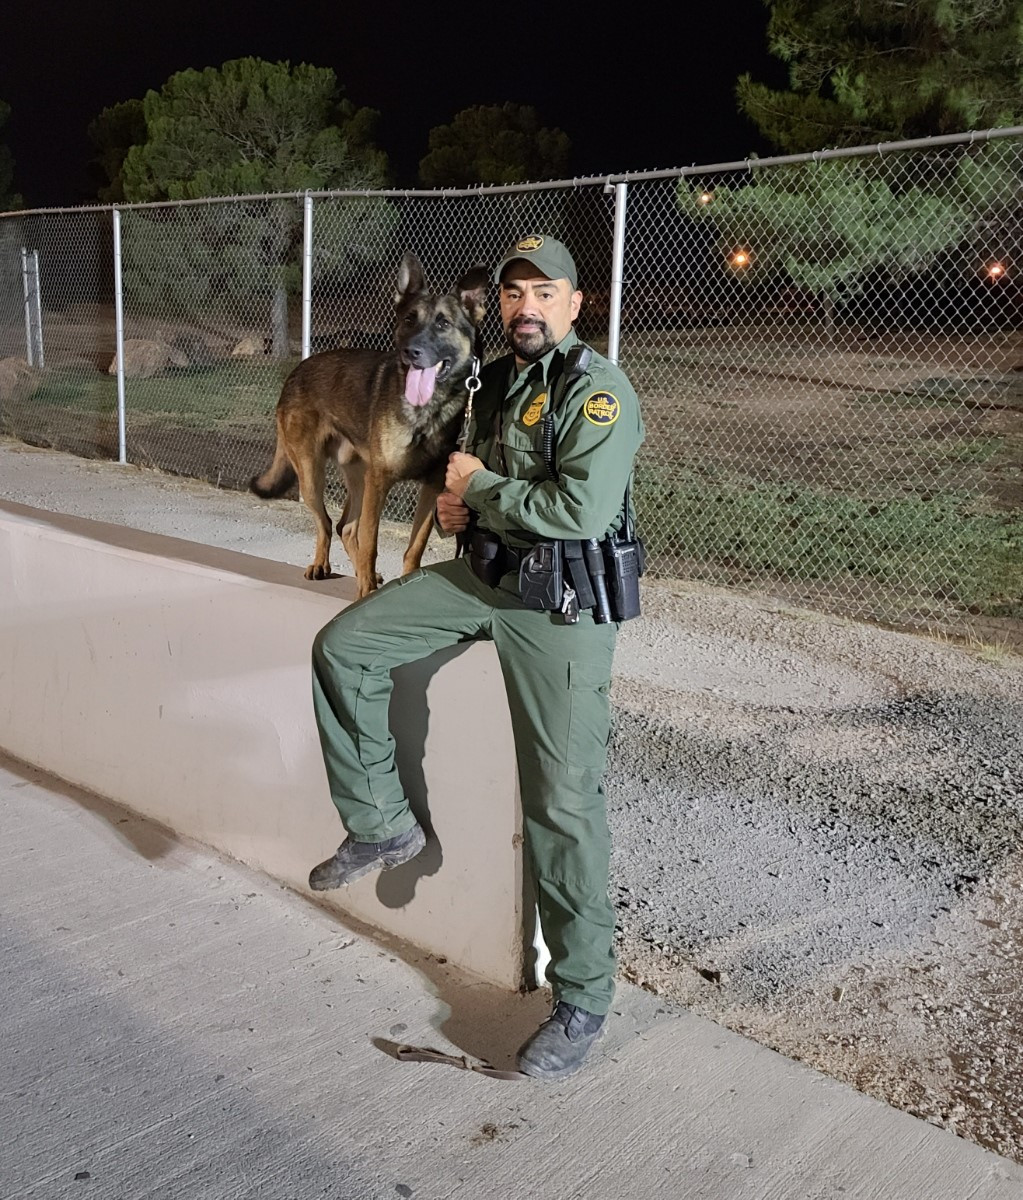 Border Patrol Agent Freddie Vasquez   United States Department of Homeland Security - Customs and Border Protection - United States Border Patrol, U.S. Government